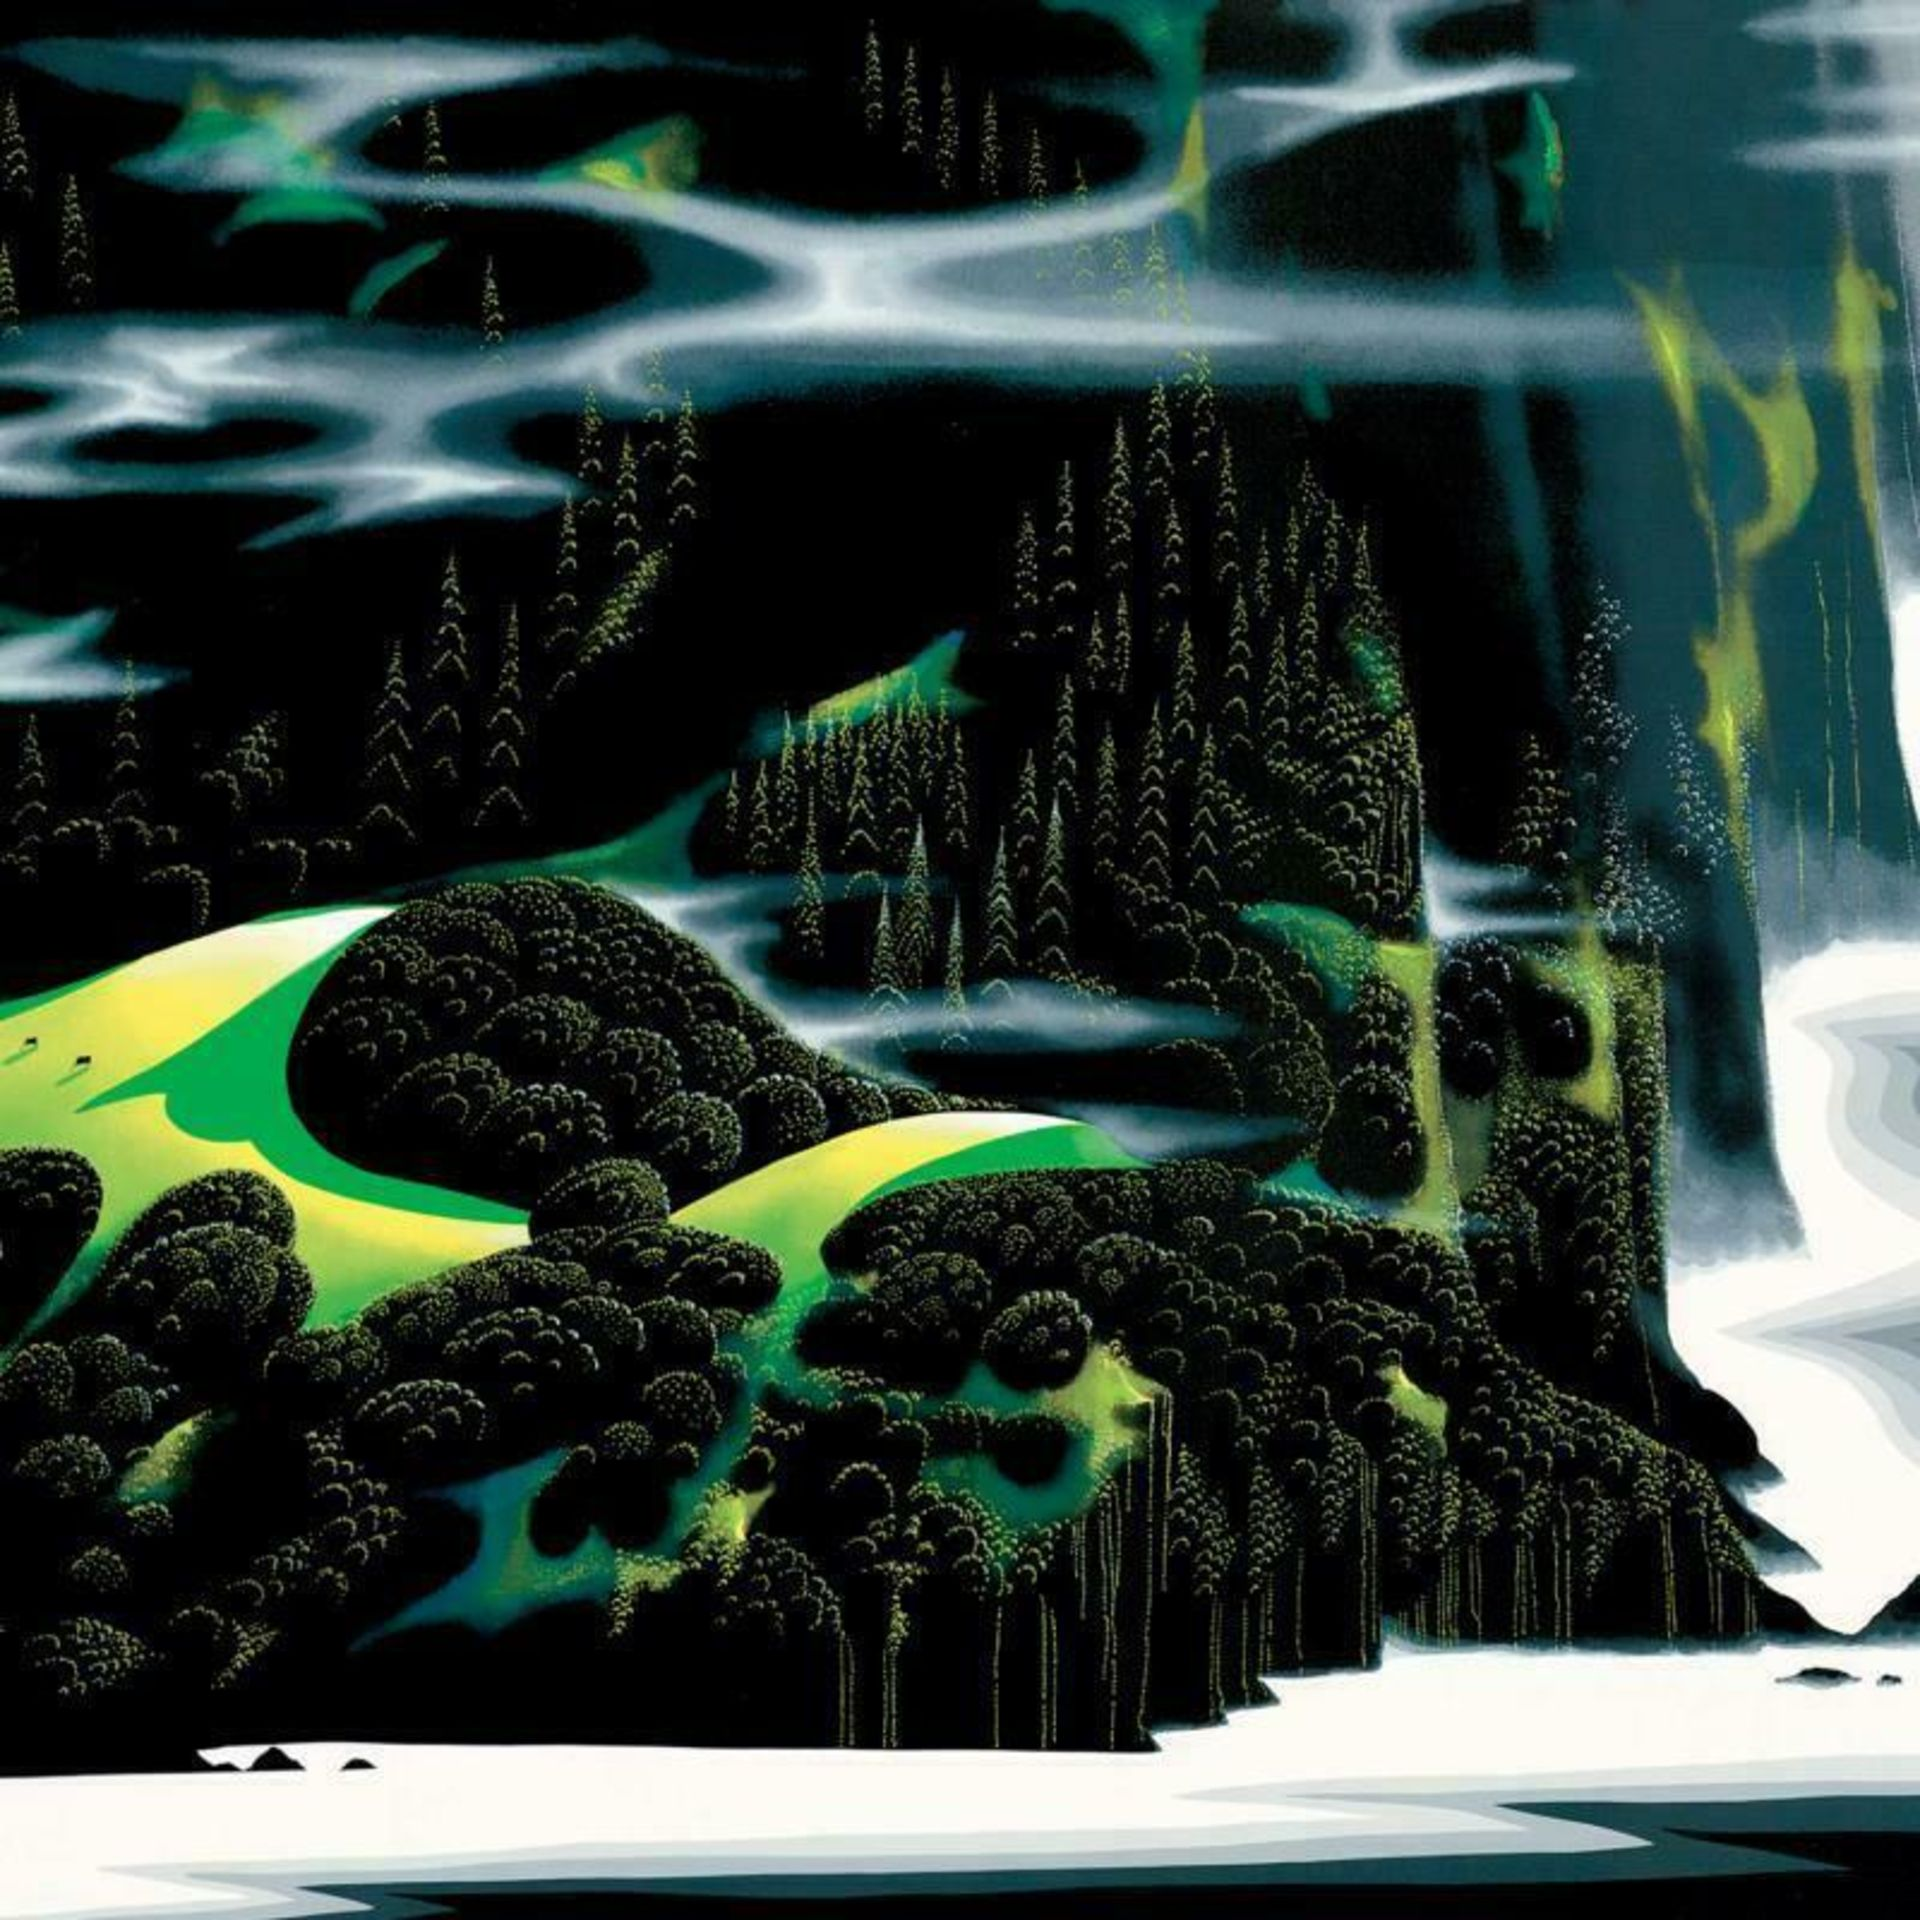 """Eyvind Earle (1916-2000), """"Haze Of Early Spring"""" Limited Edition Serigraph on Pa - Image 2 of 2"""